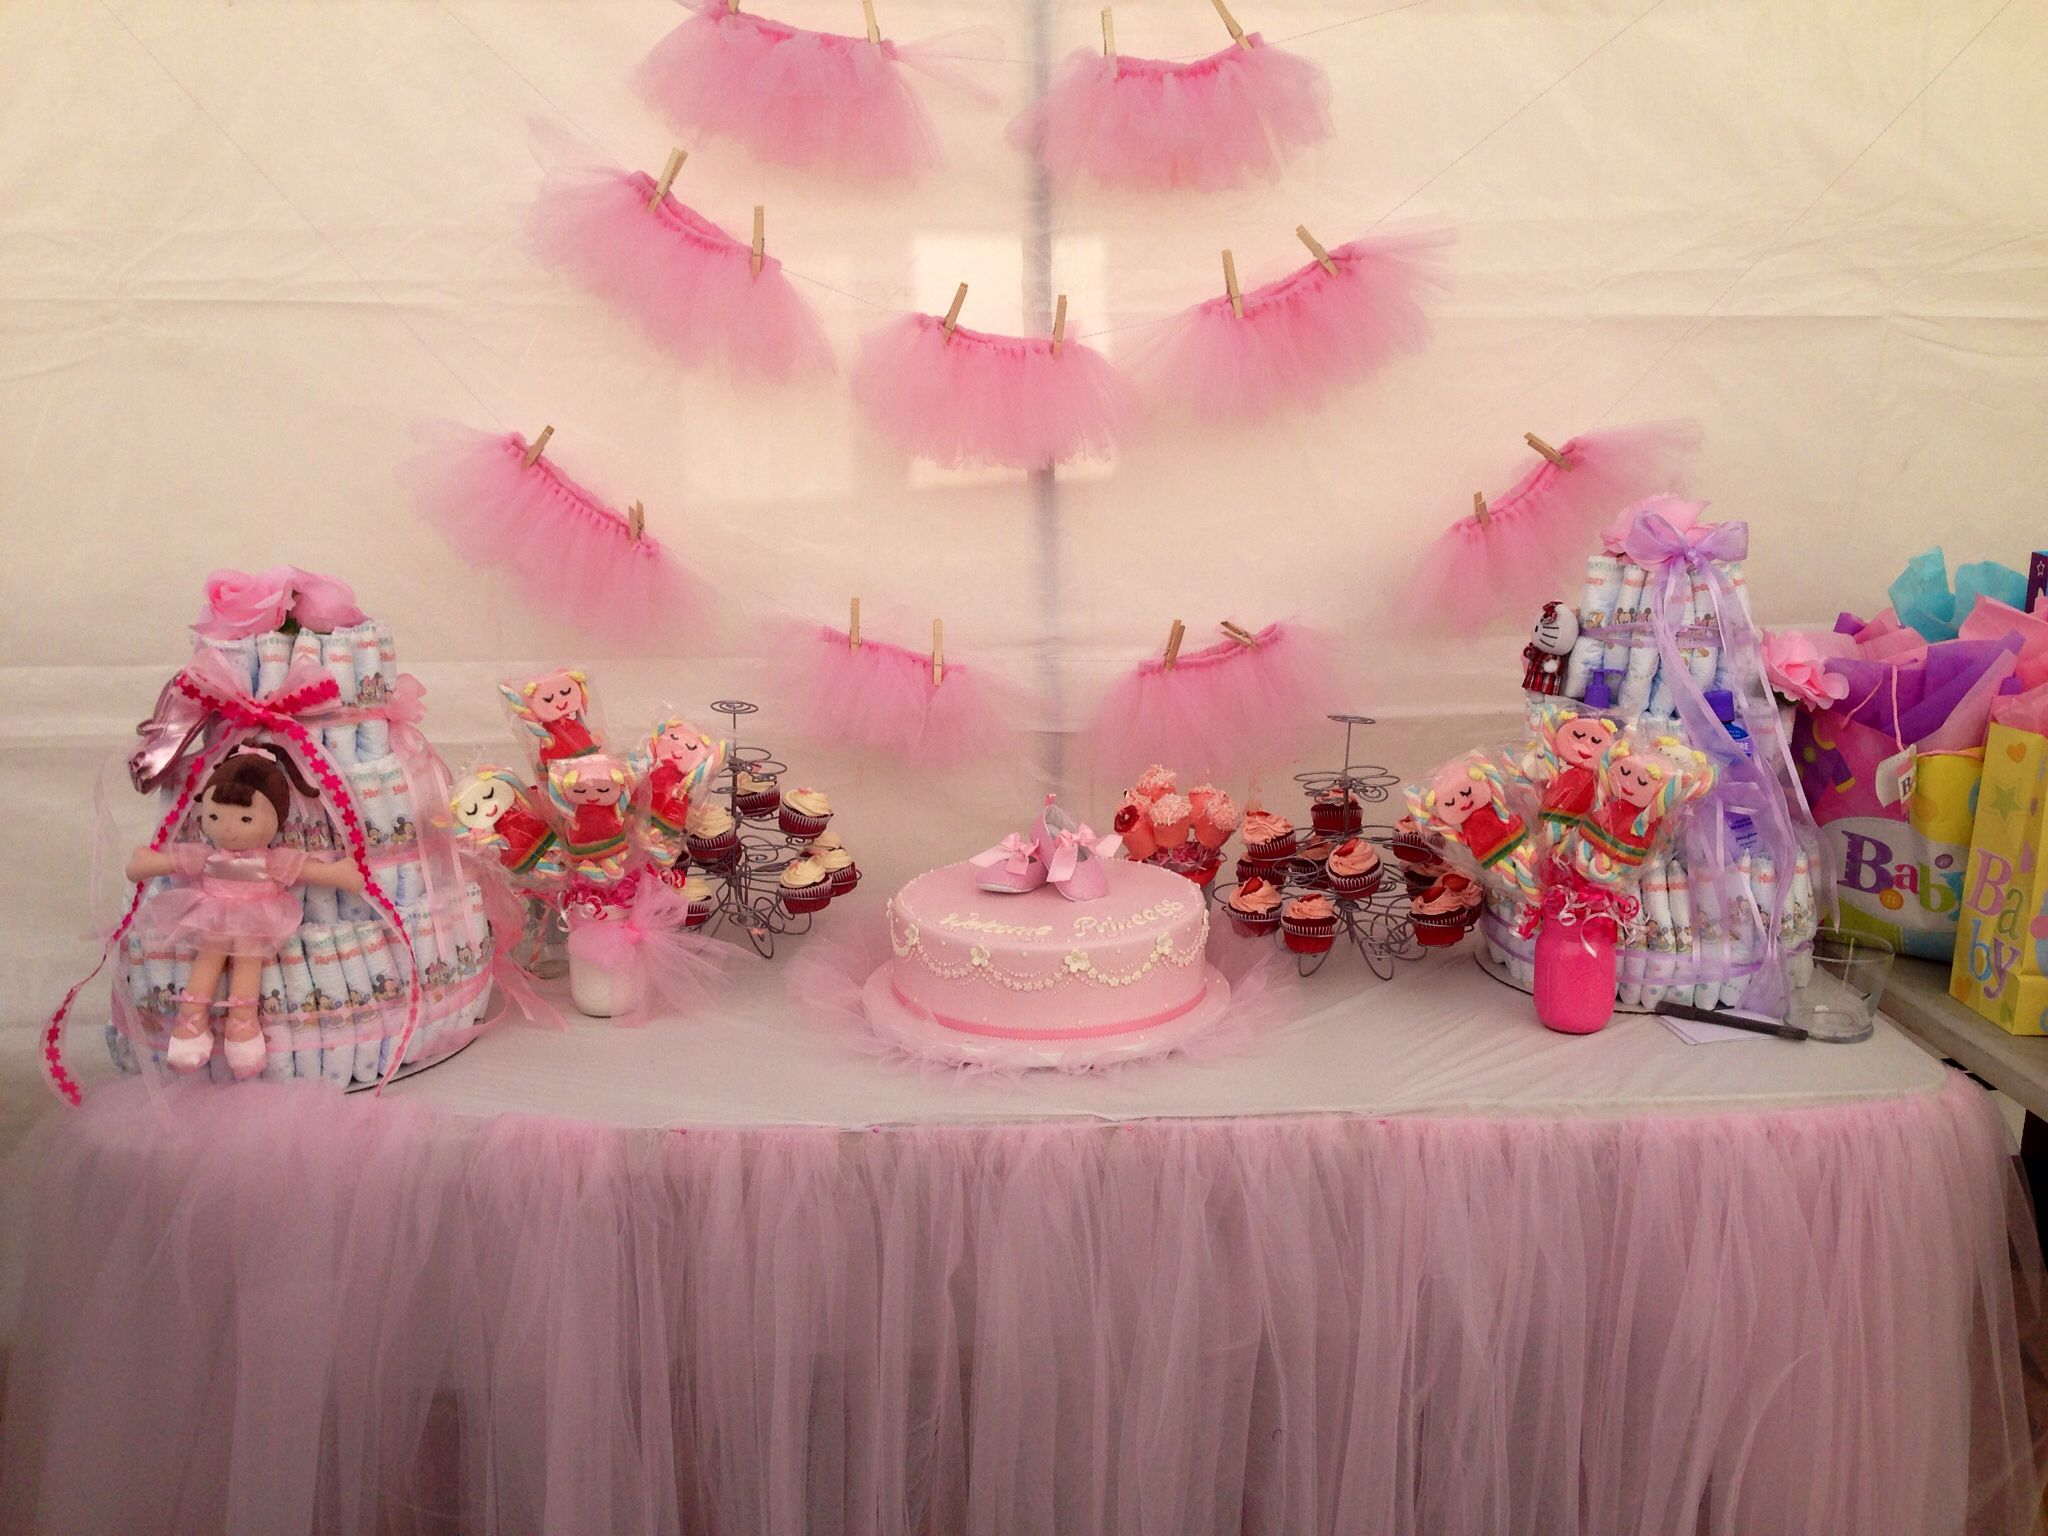 Ballerina baby shower Party decorations ideas